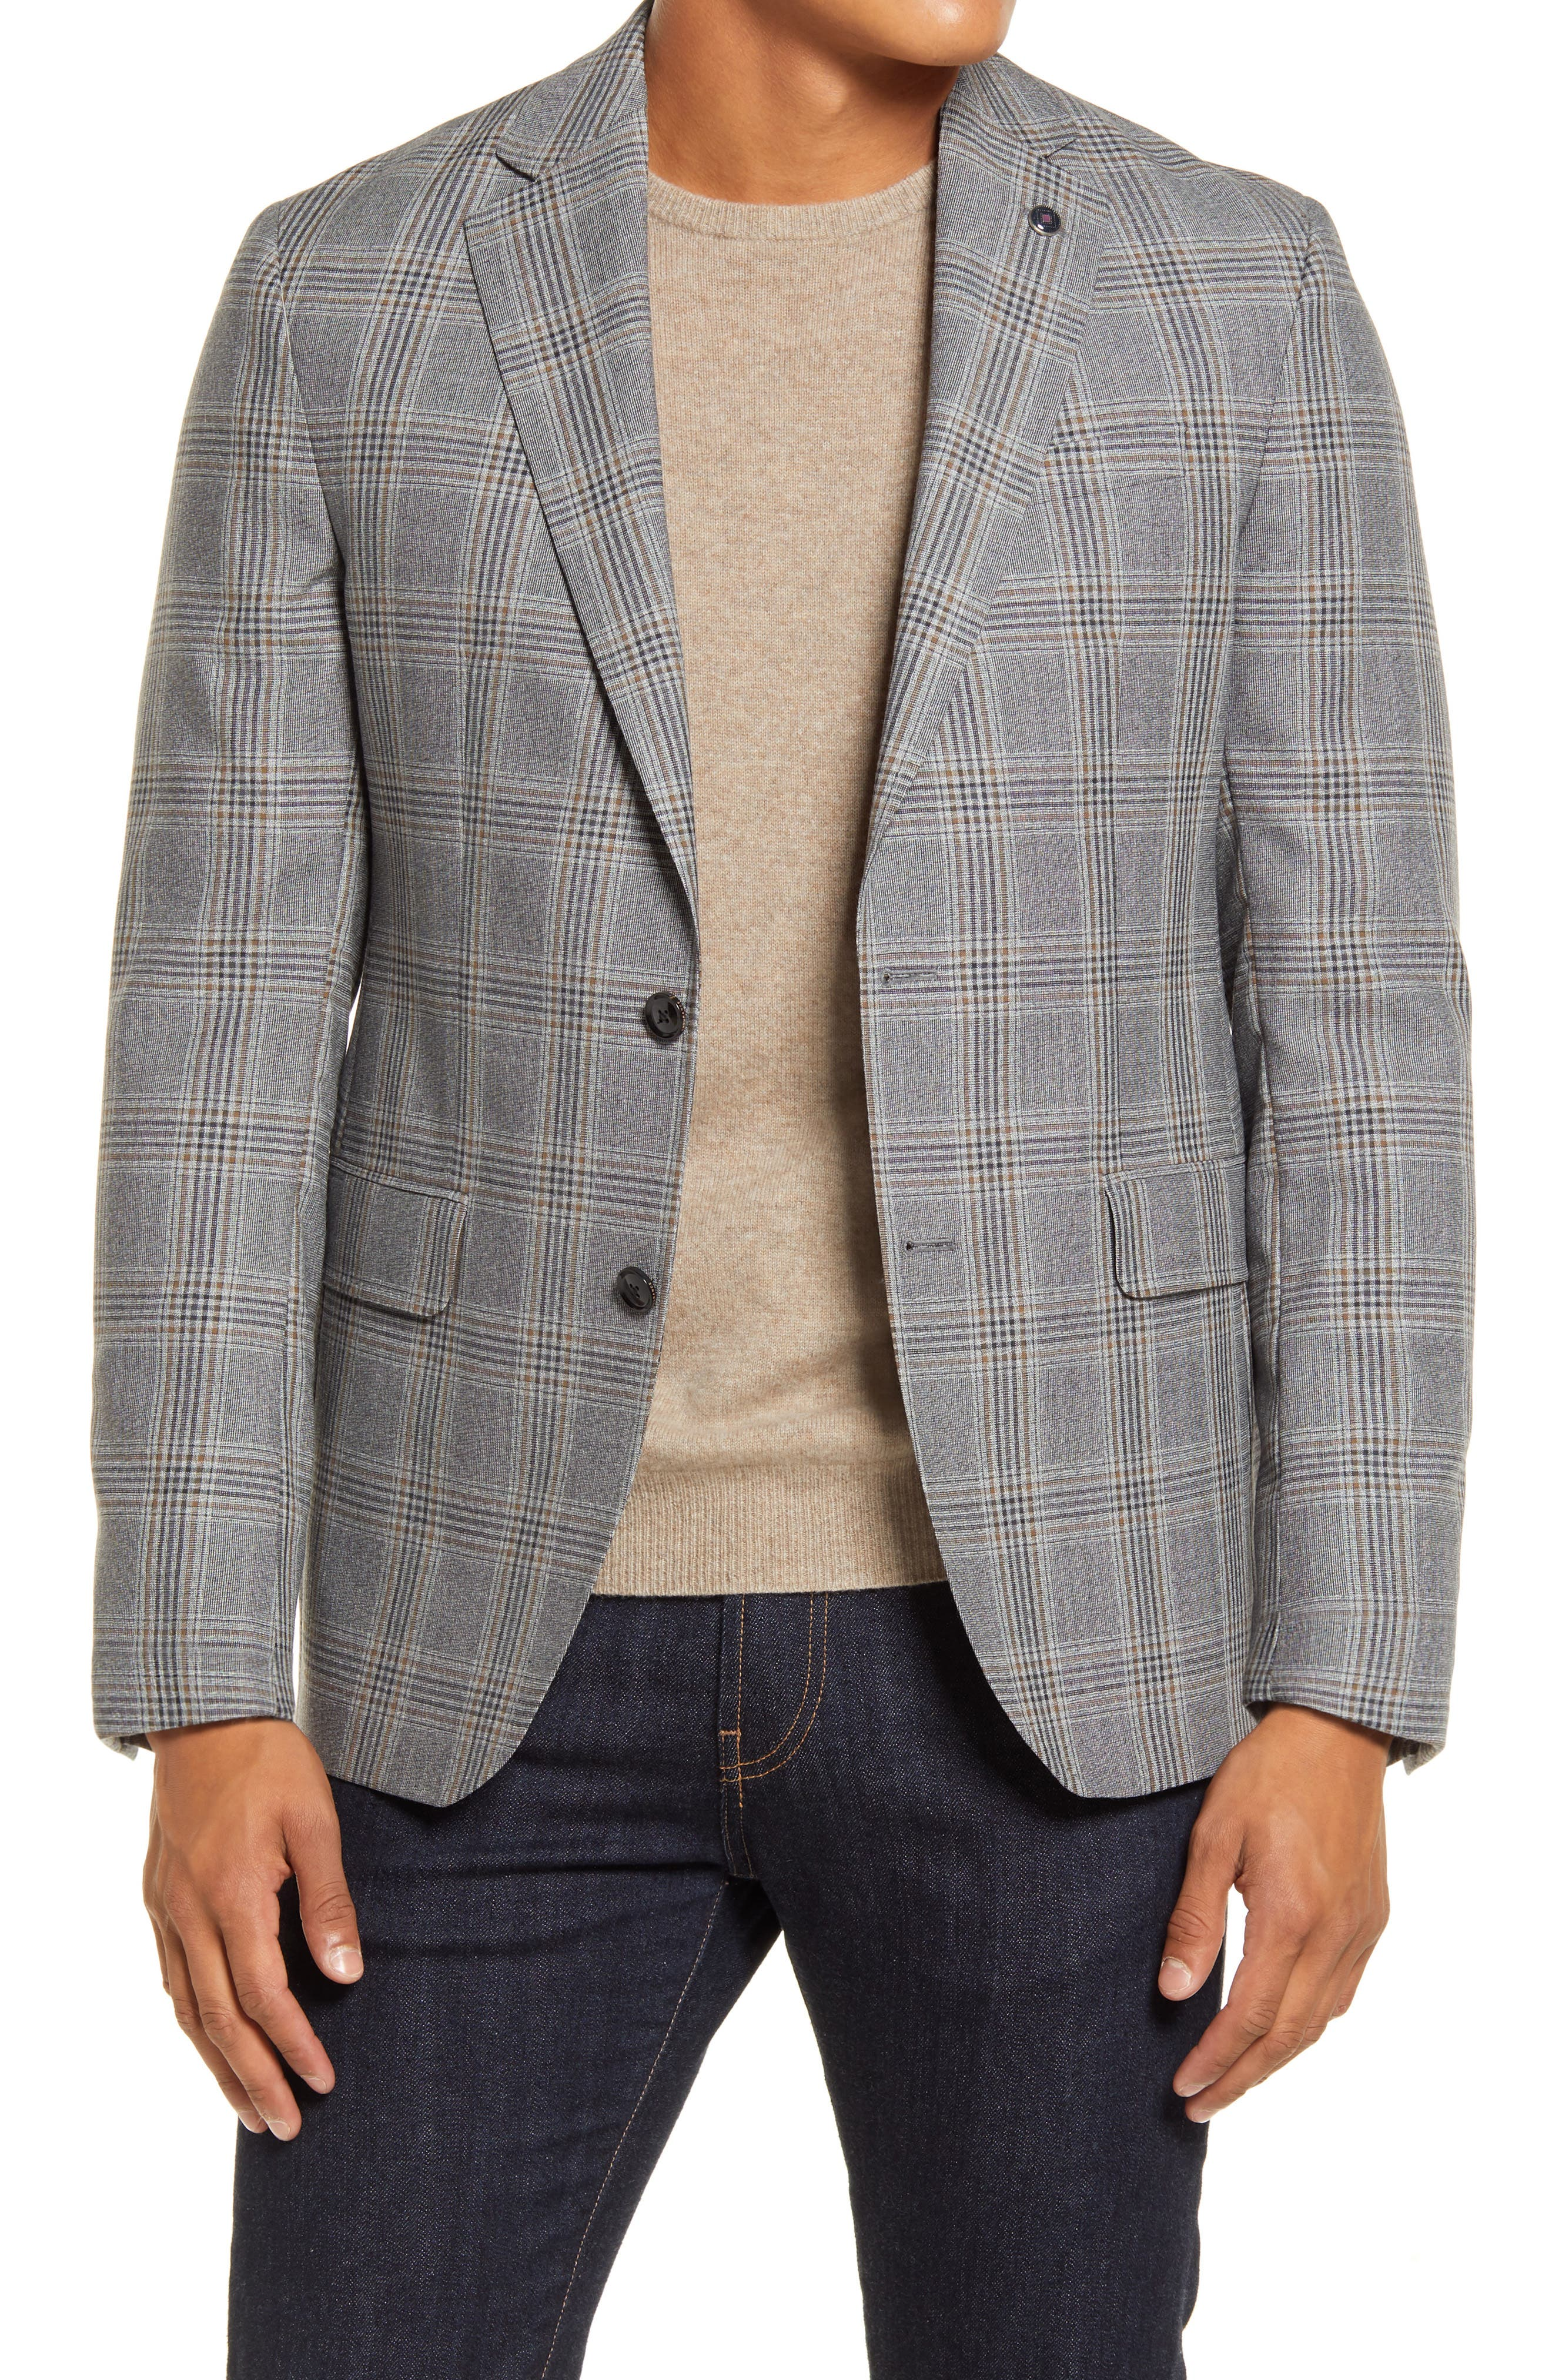 Richly textured Italian wool elevates a premium plaid blazer crafted in a crisp two-button cut framed with smart notched lapels. A bold print lining adds a tinge of vintage appeal. Style Name: Ted Baker London Konan Trim Fit Plaid Wool Blazer. Style Number: 6040370. Available in stores.